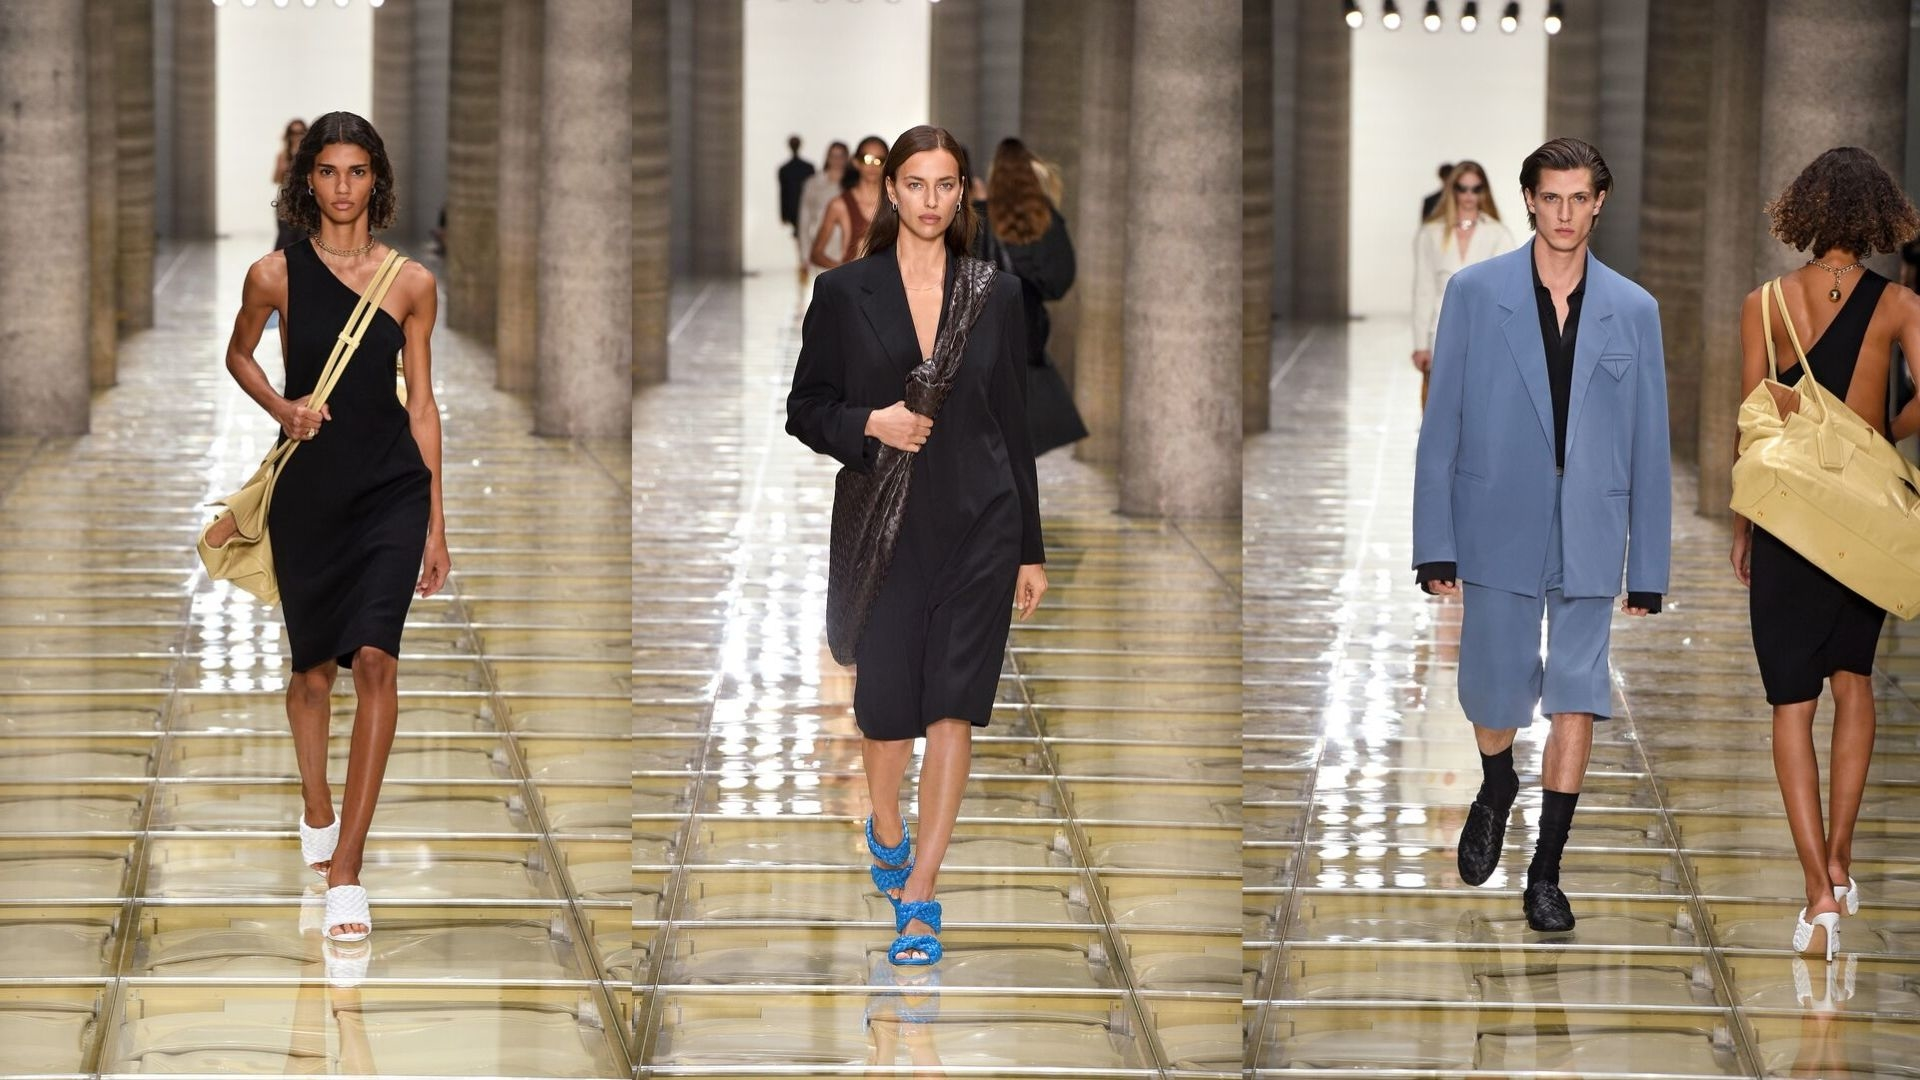 MFW: Bottega Veneta's Chic, Cool And Collected Spring/Summer 2020 Show